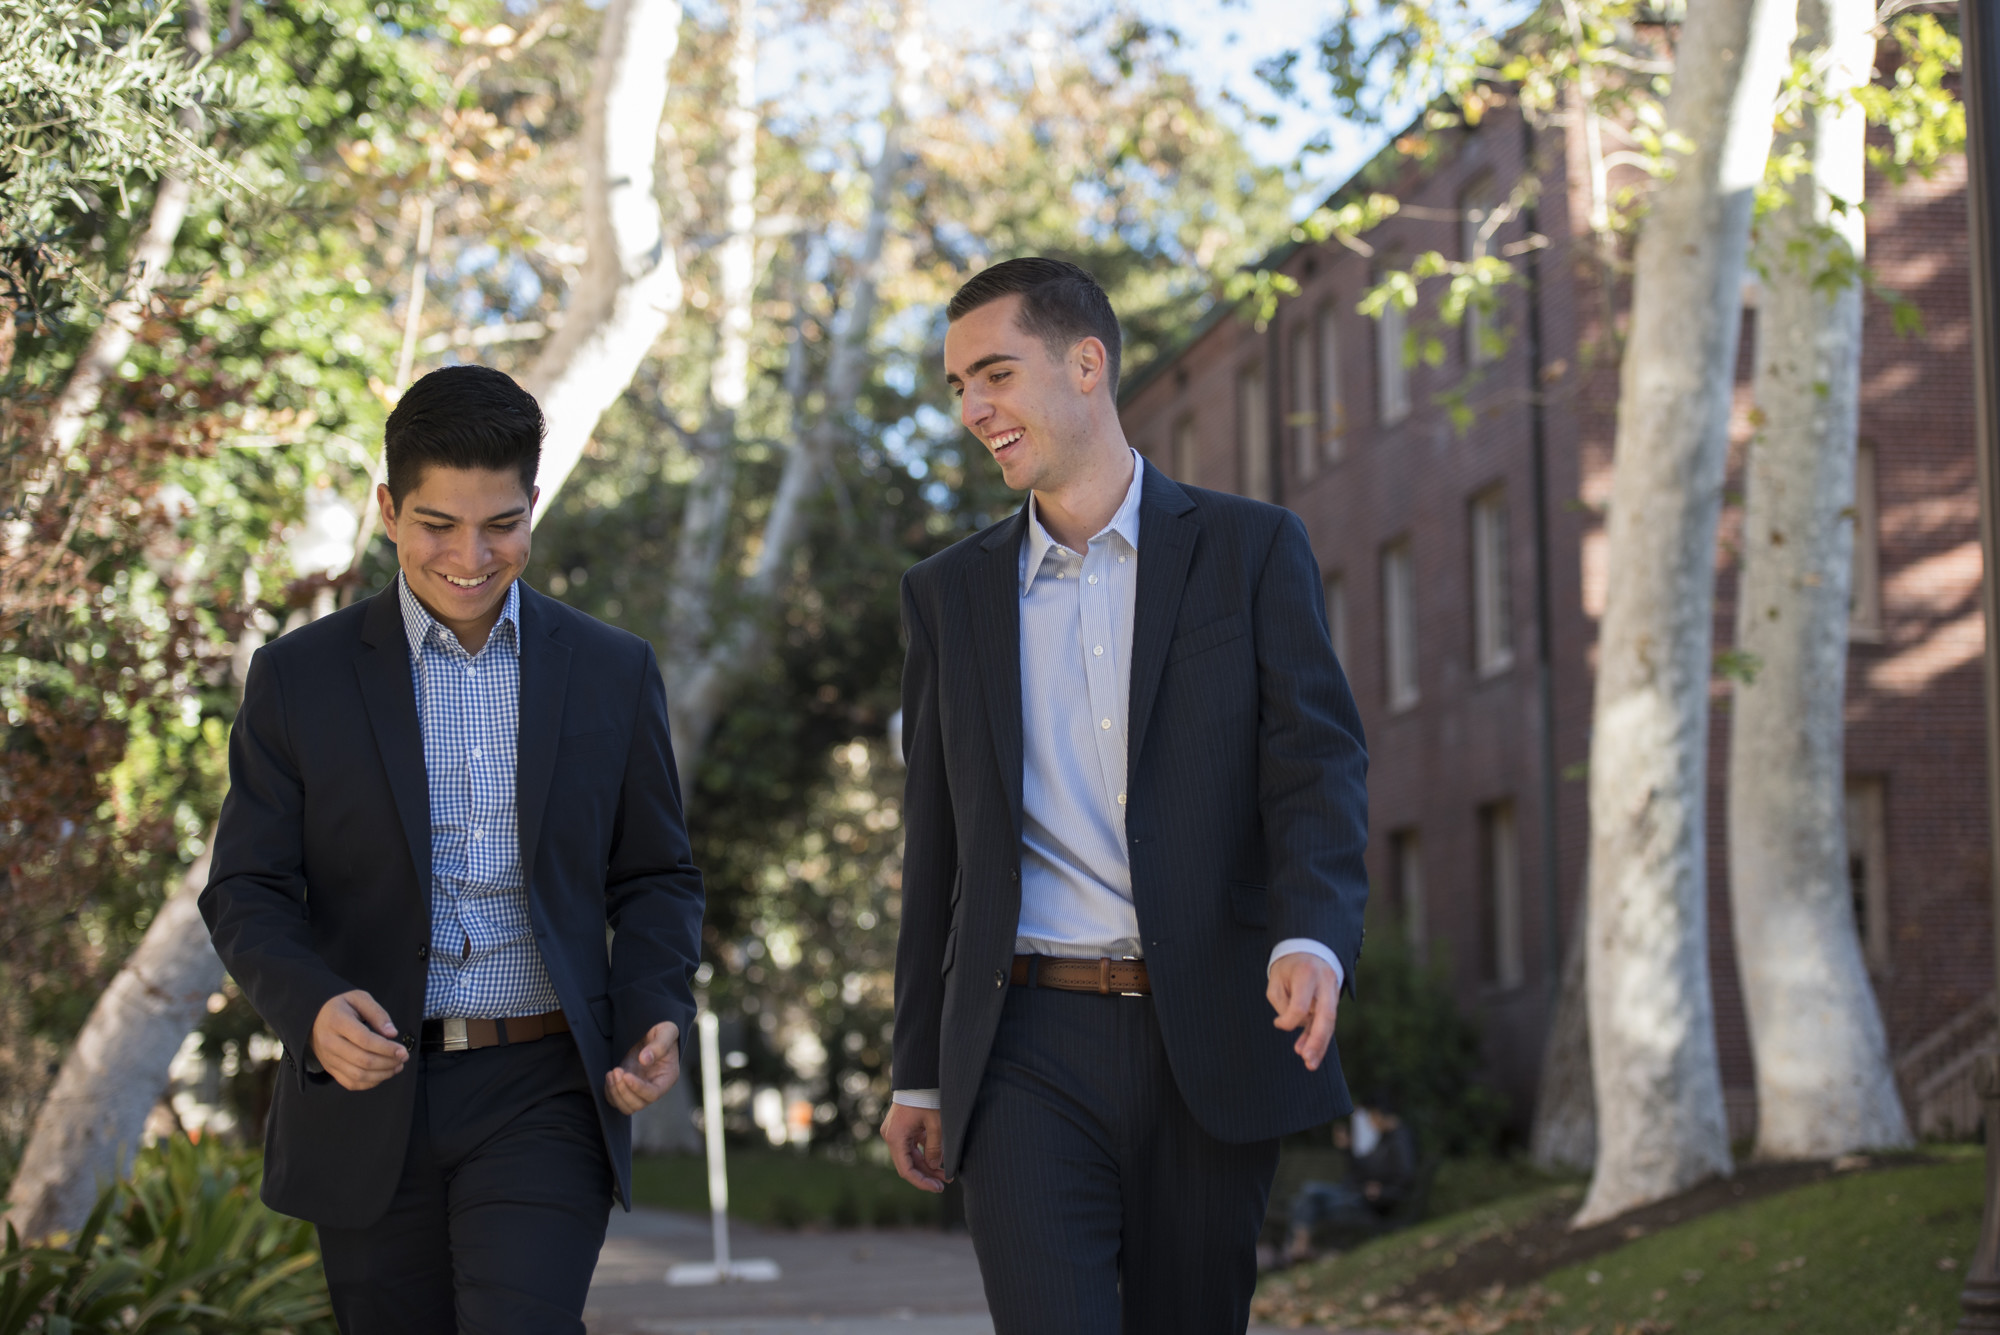 Edwin Saucedo, left, walks across campus with Austin Dunn, student body vice president and incoming president. Saucedo said he hopes Dunn will continue the momentum they have built on numerous campus issues.